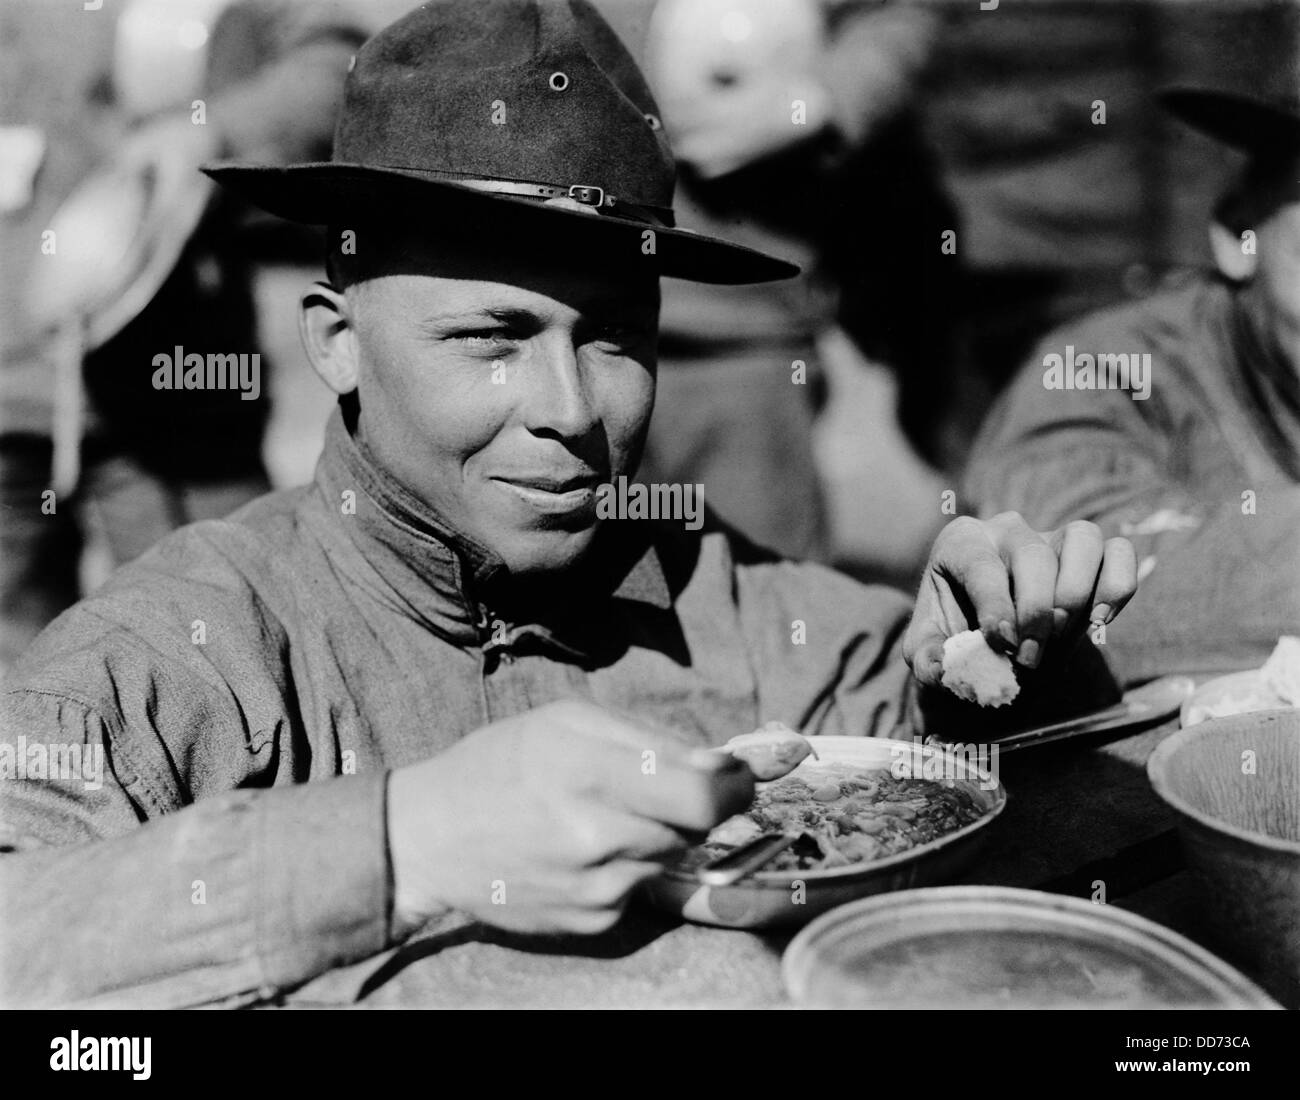 American WW1 soldier eating from his mess kit. 1917-18. (BSLOC_2012_4_159) - Stock Image